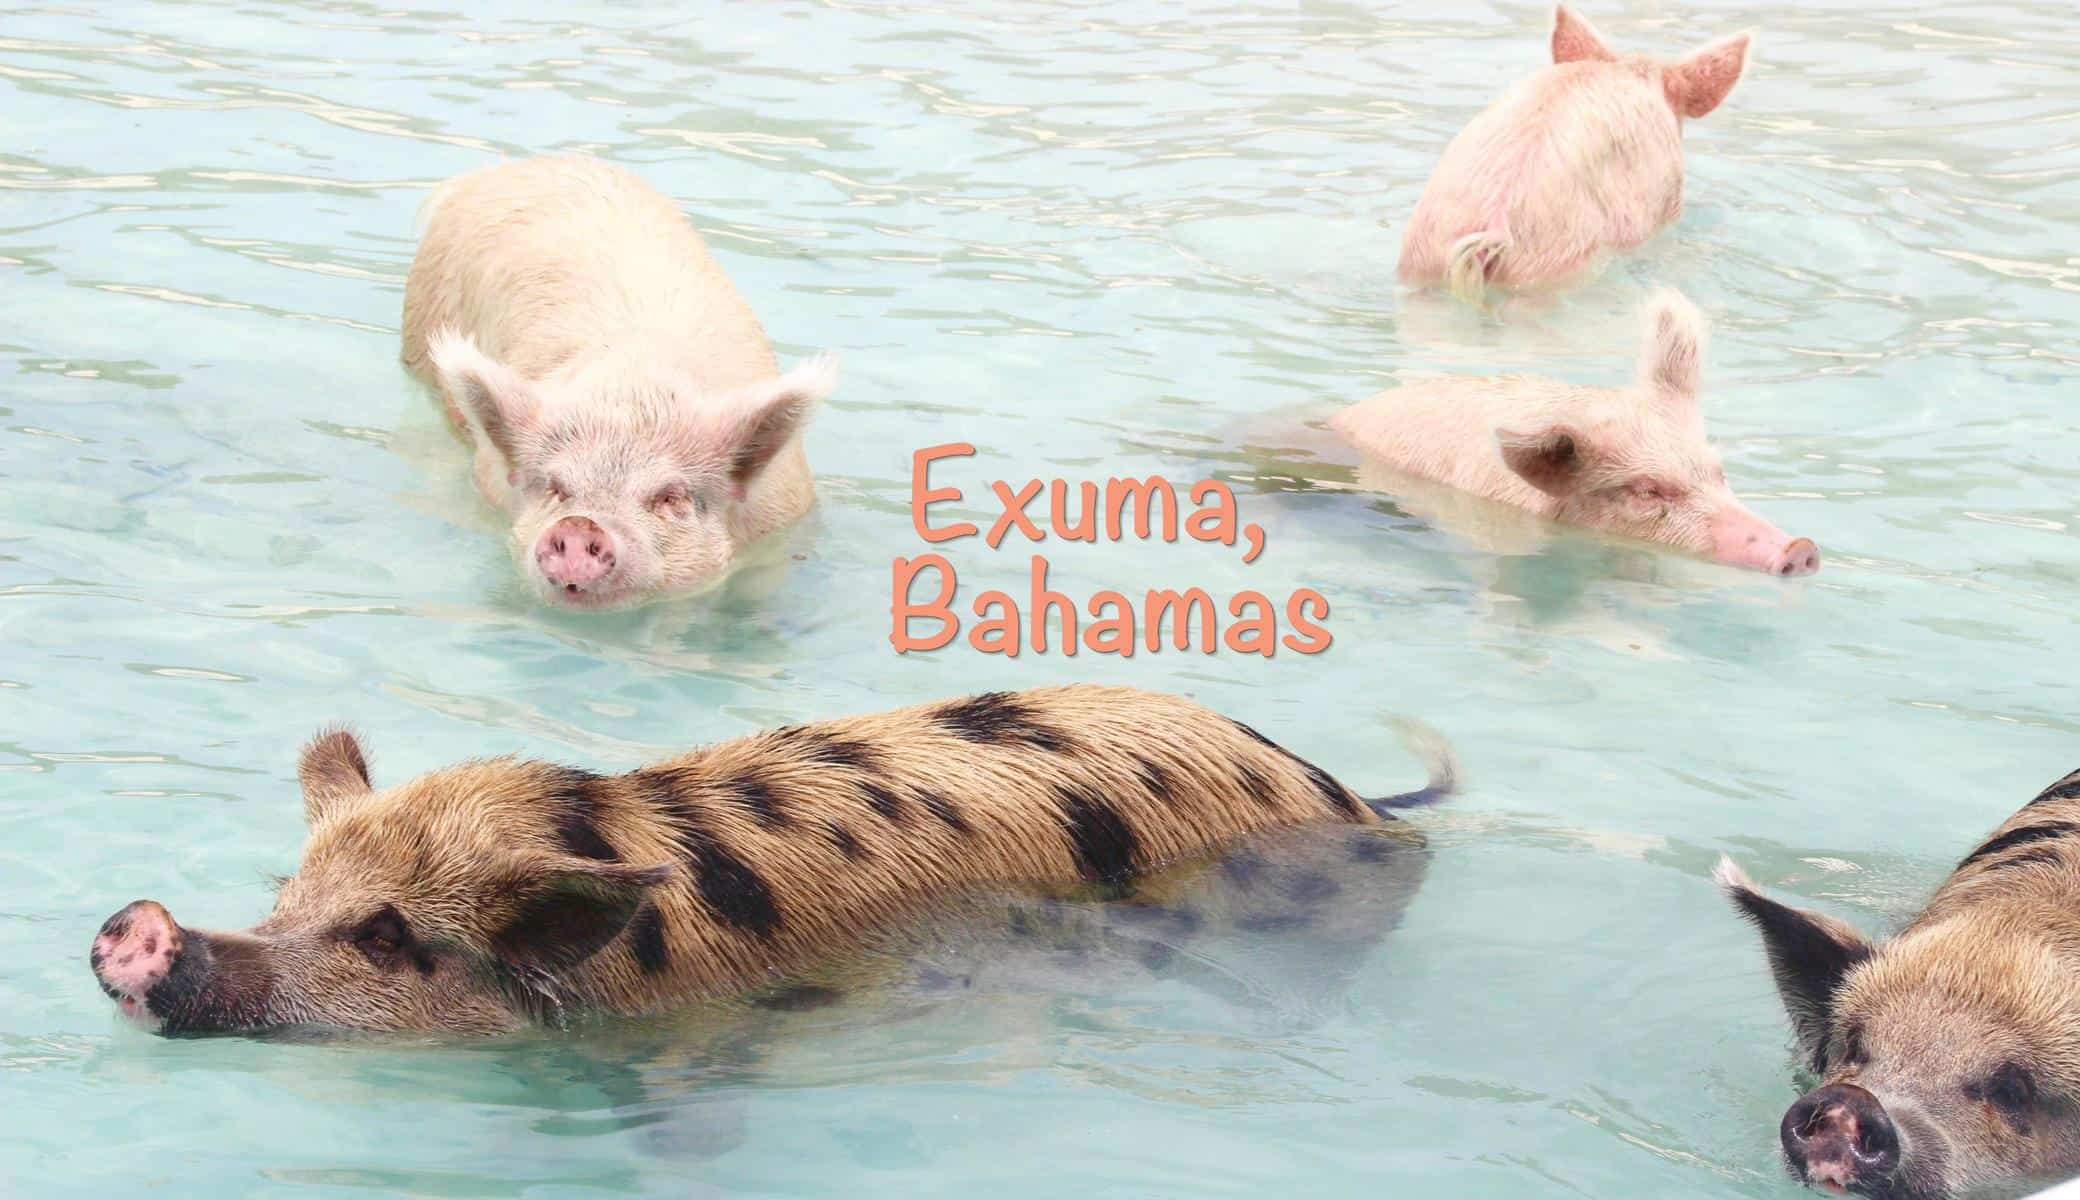 Swimming pigs, sharks & so much more in Exuma, Bahamas – The